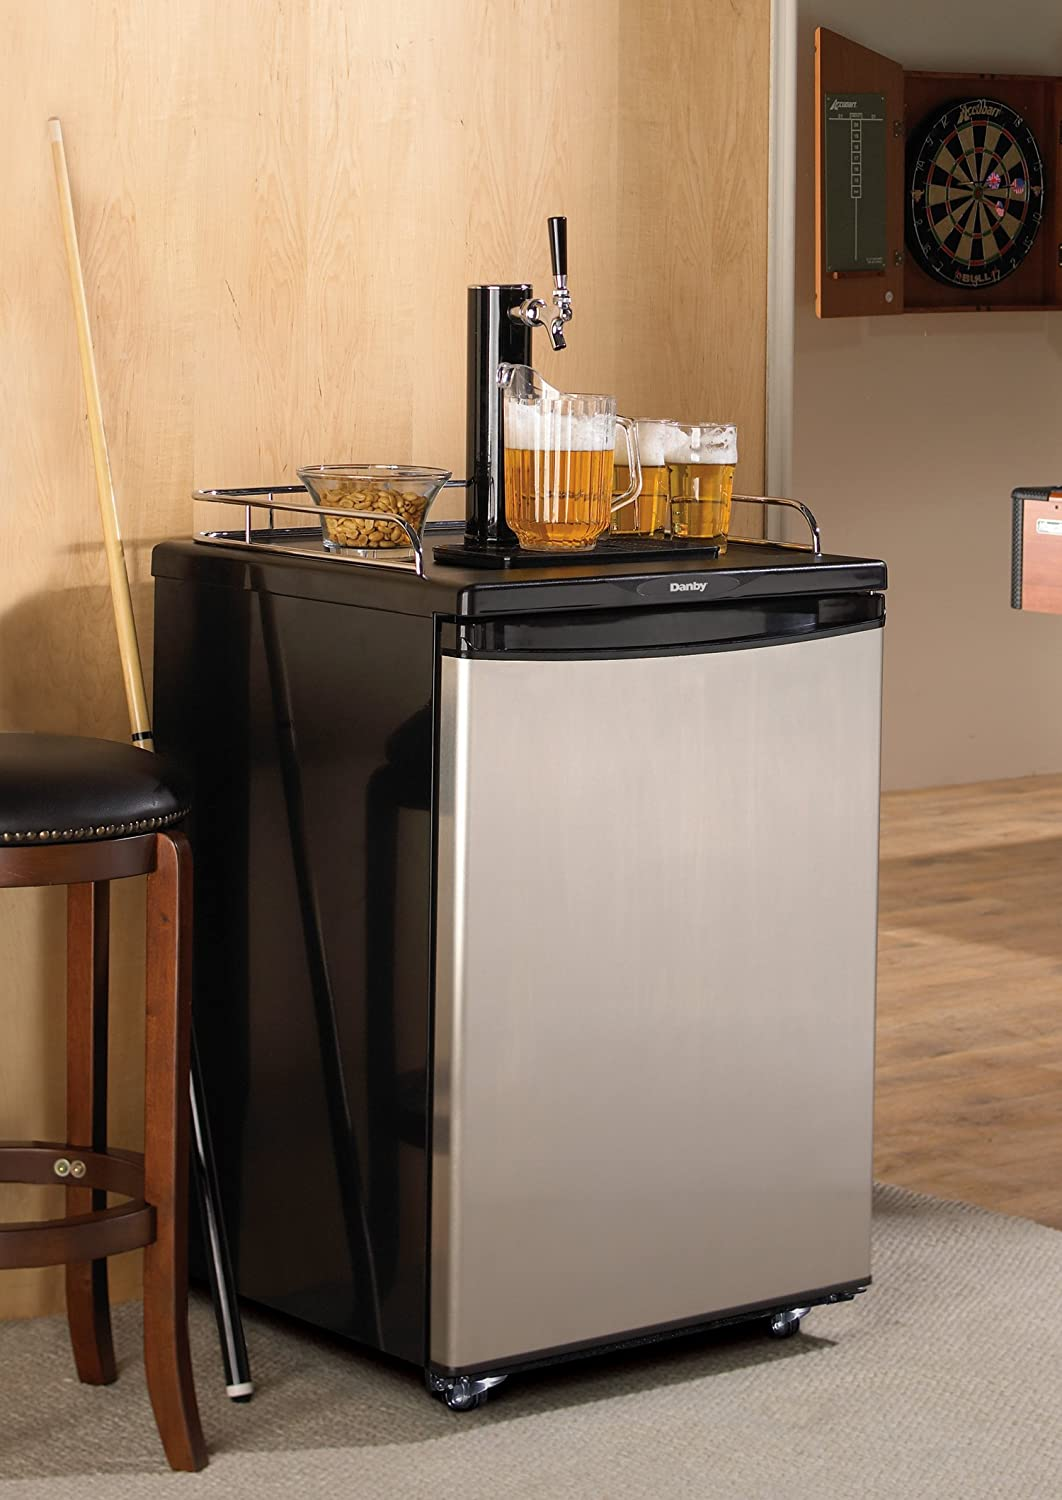 Danby keg cooler